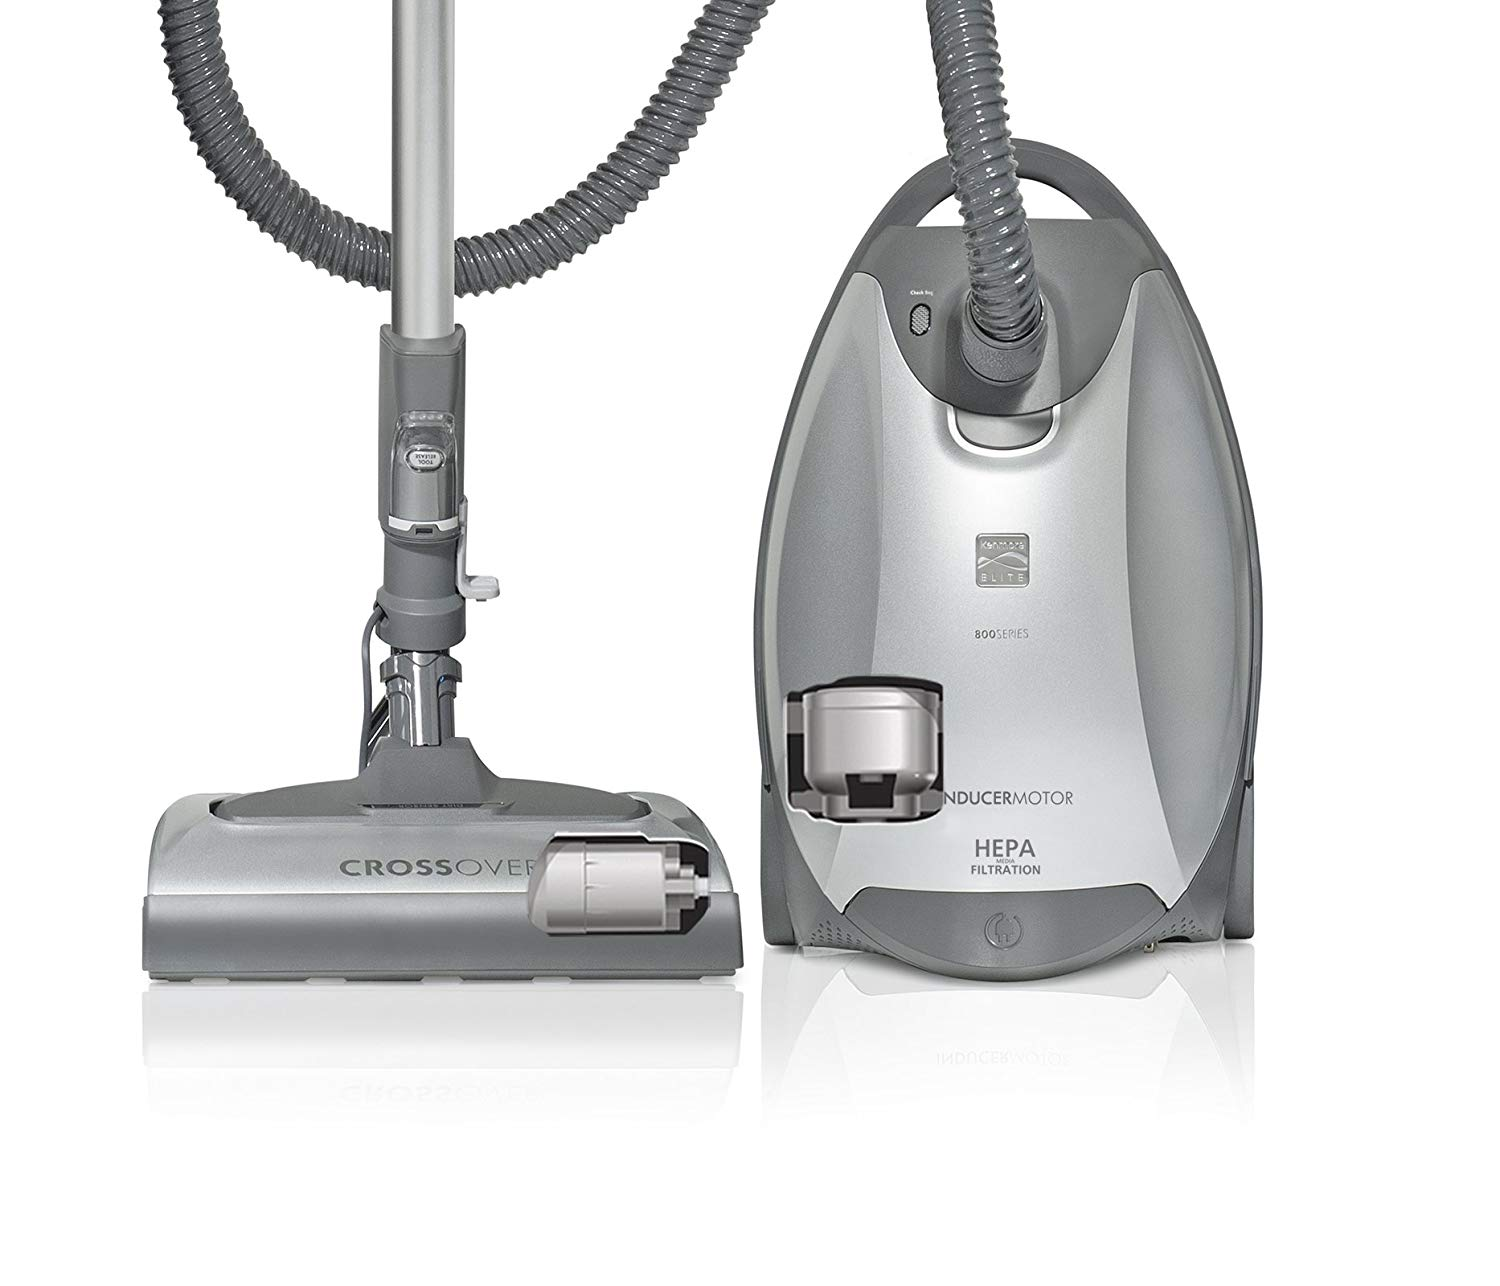 Best Canister Vacuums To Help Keep Your Home Spotless